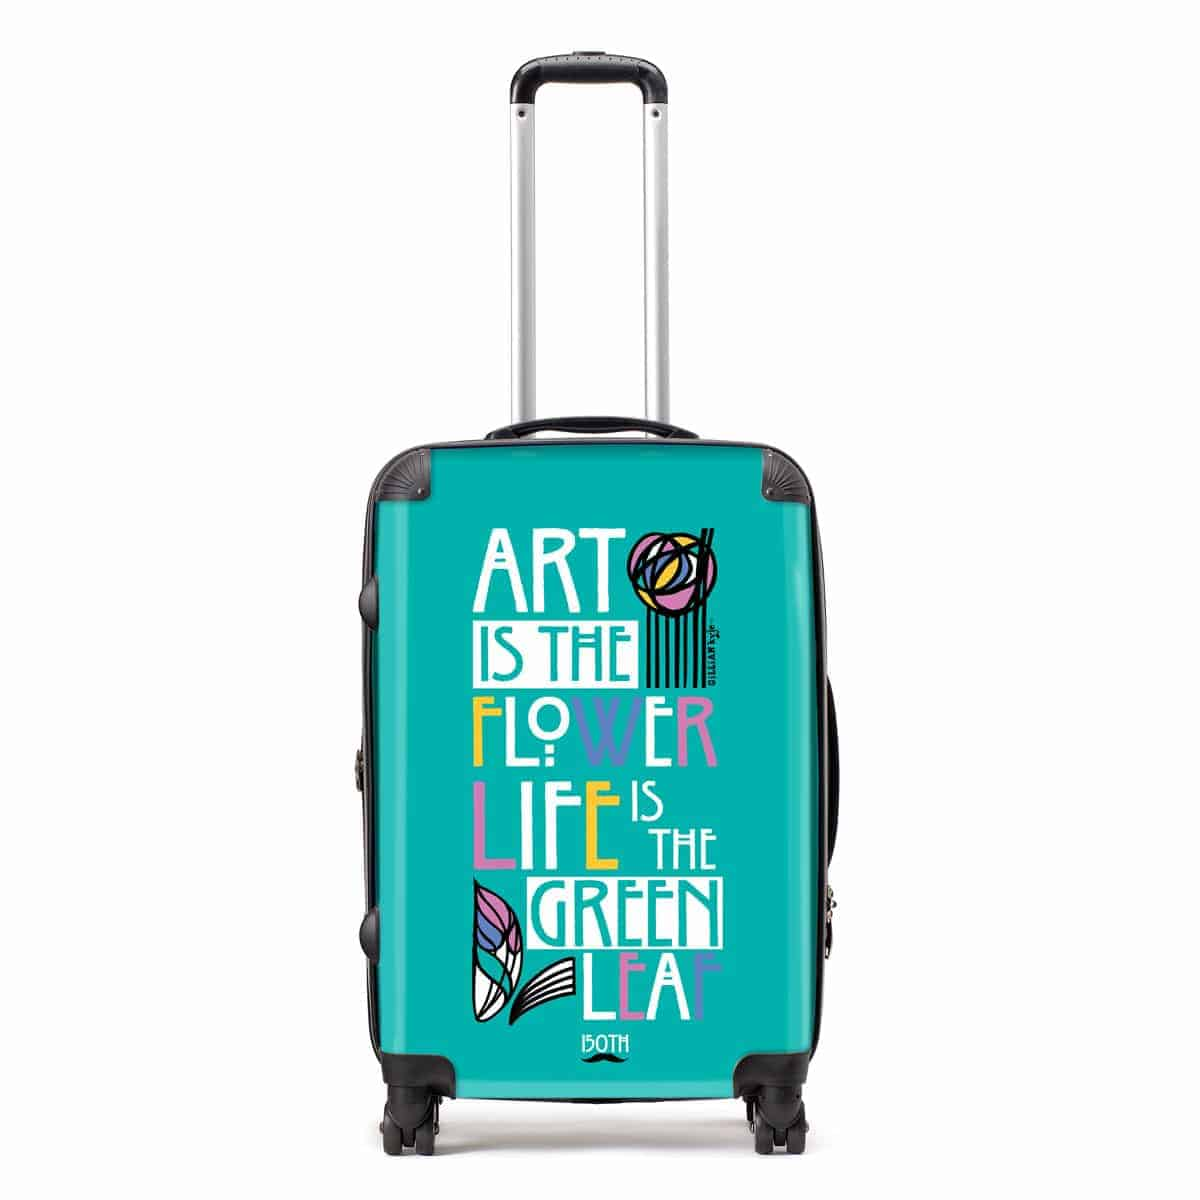 Charles Rennie Mackintosh rose and famous quote font design suitcase celebrating the Scottish artist, designer and architect on his 150th birthday by Gillian Kyle